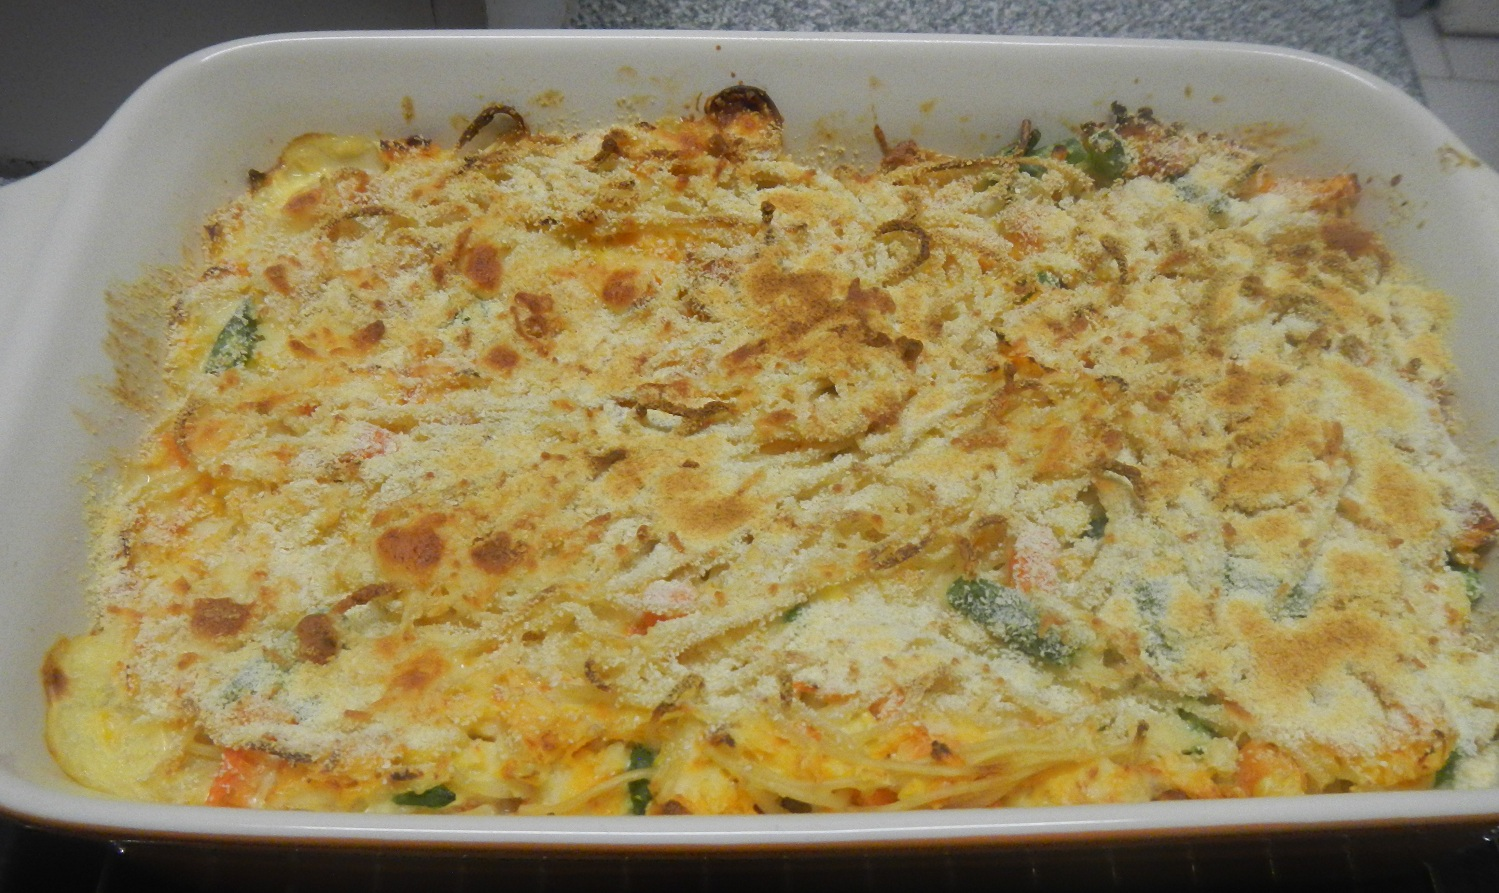 Cheesy haddock and spaghtti bake